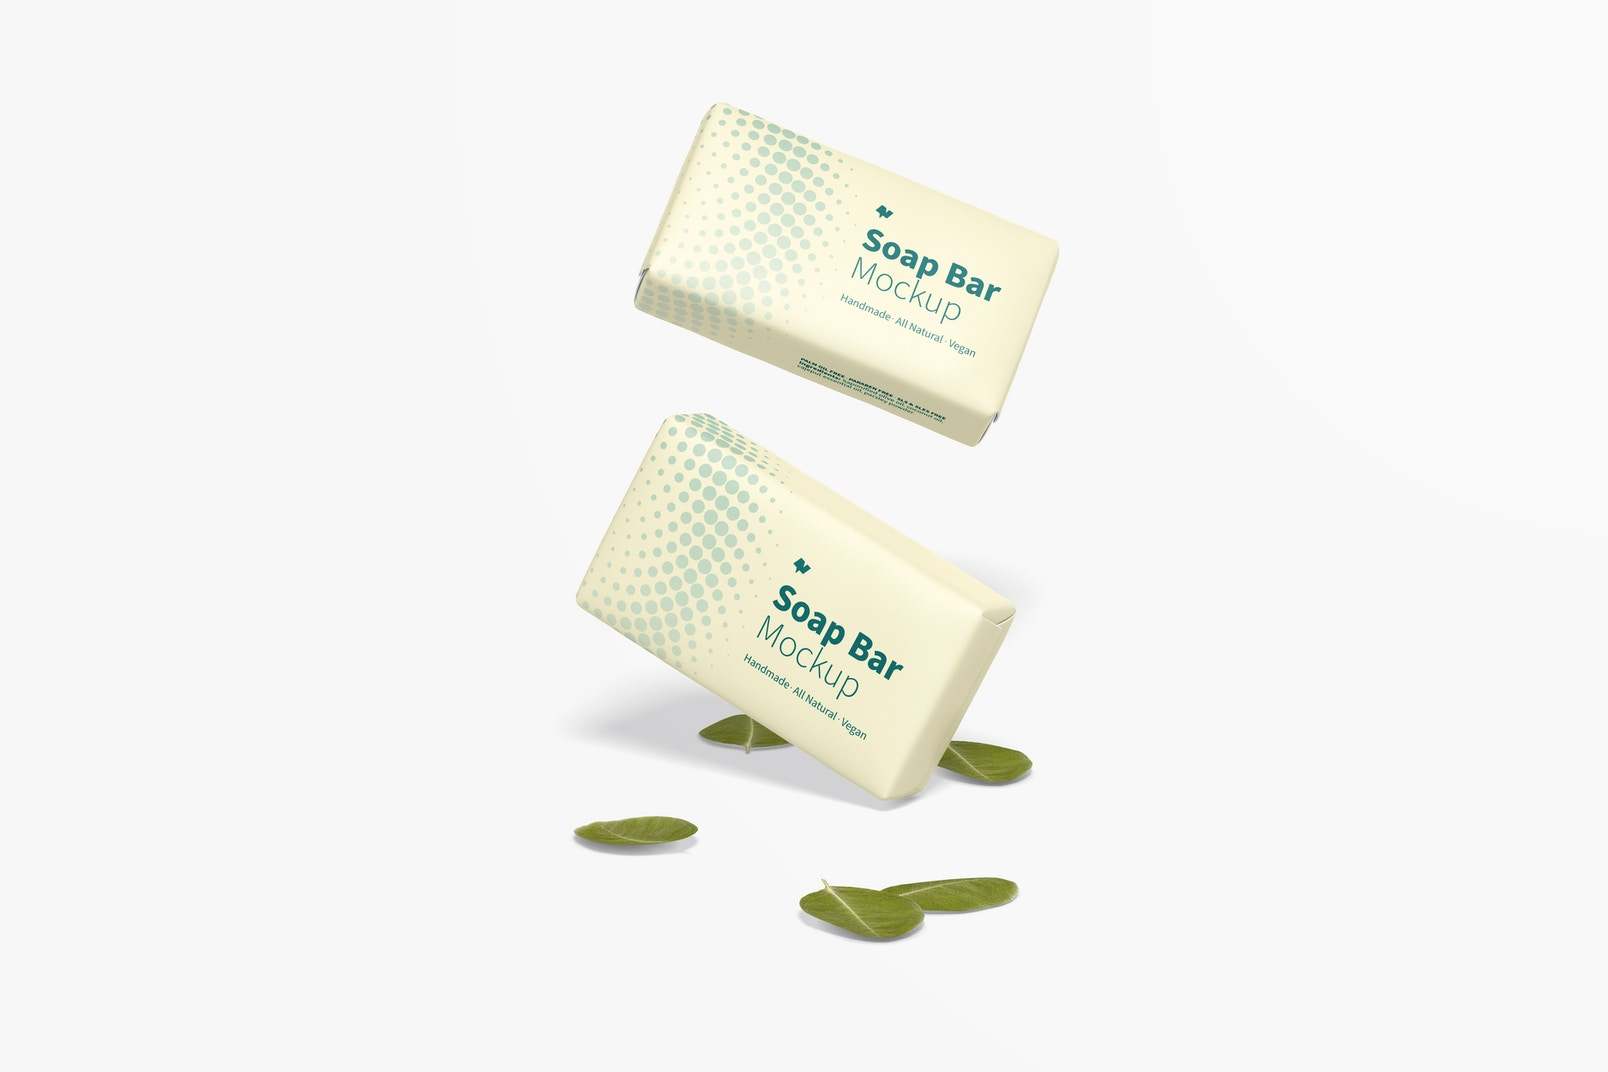 Soap Bars with Paper Package Mockup, Floating